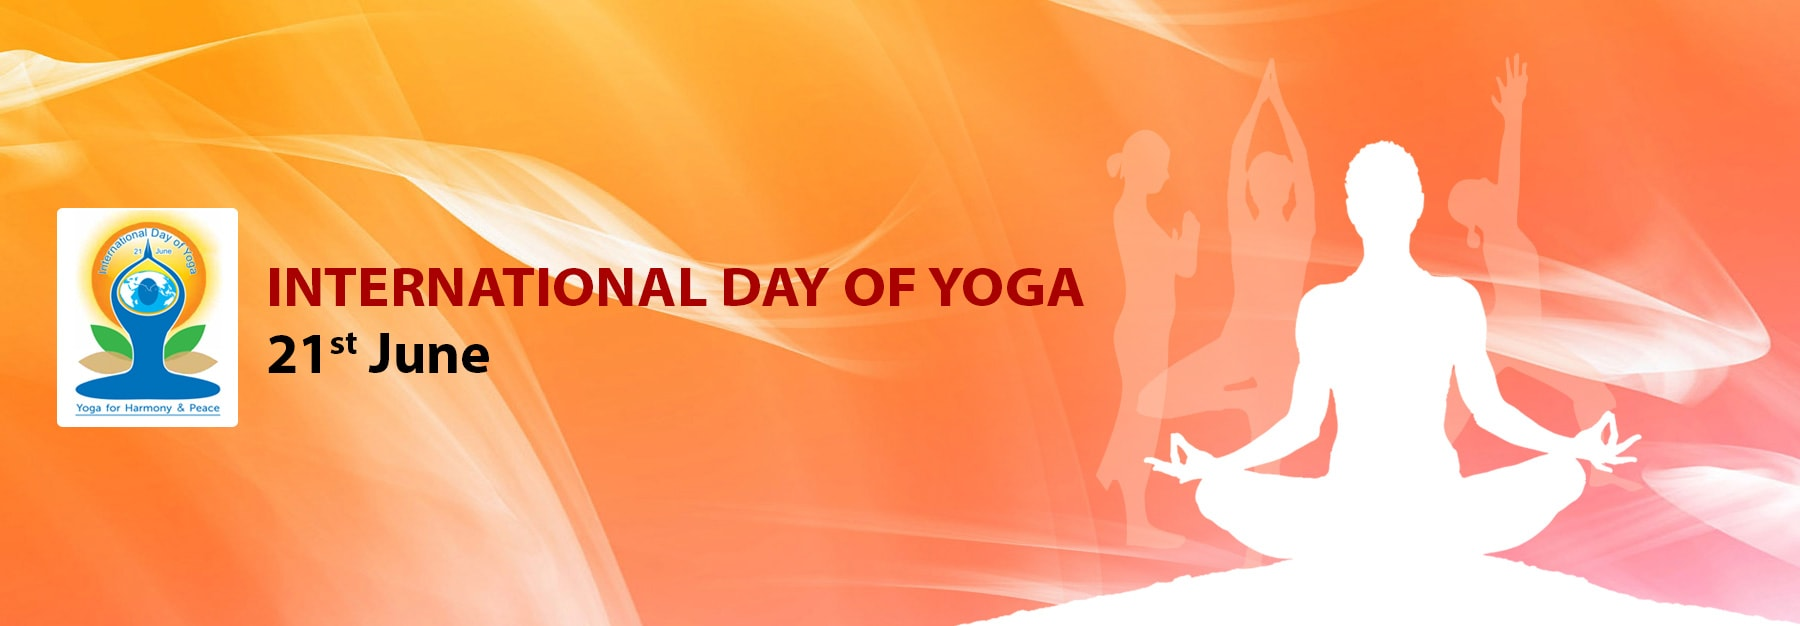 happy international yoga day 2017 hd wallpapers banners covers pictures